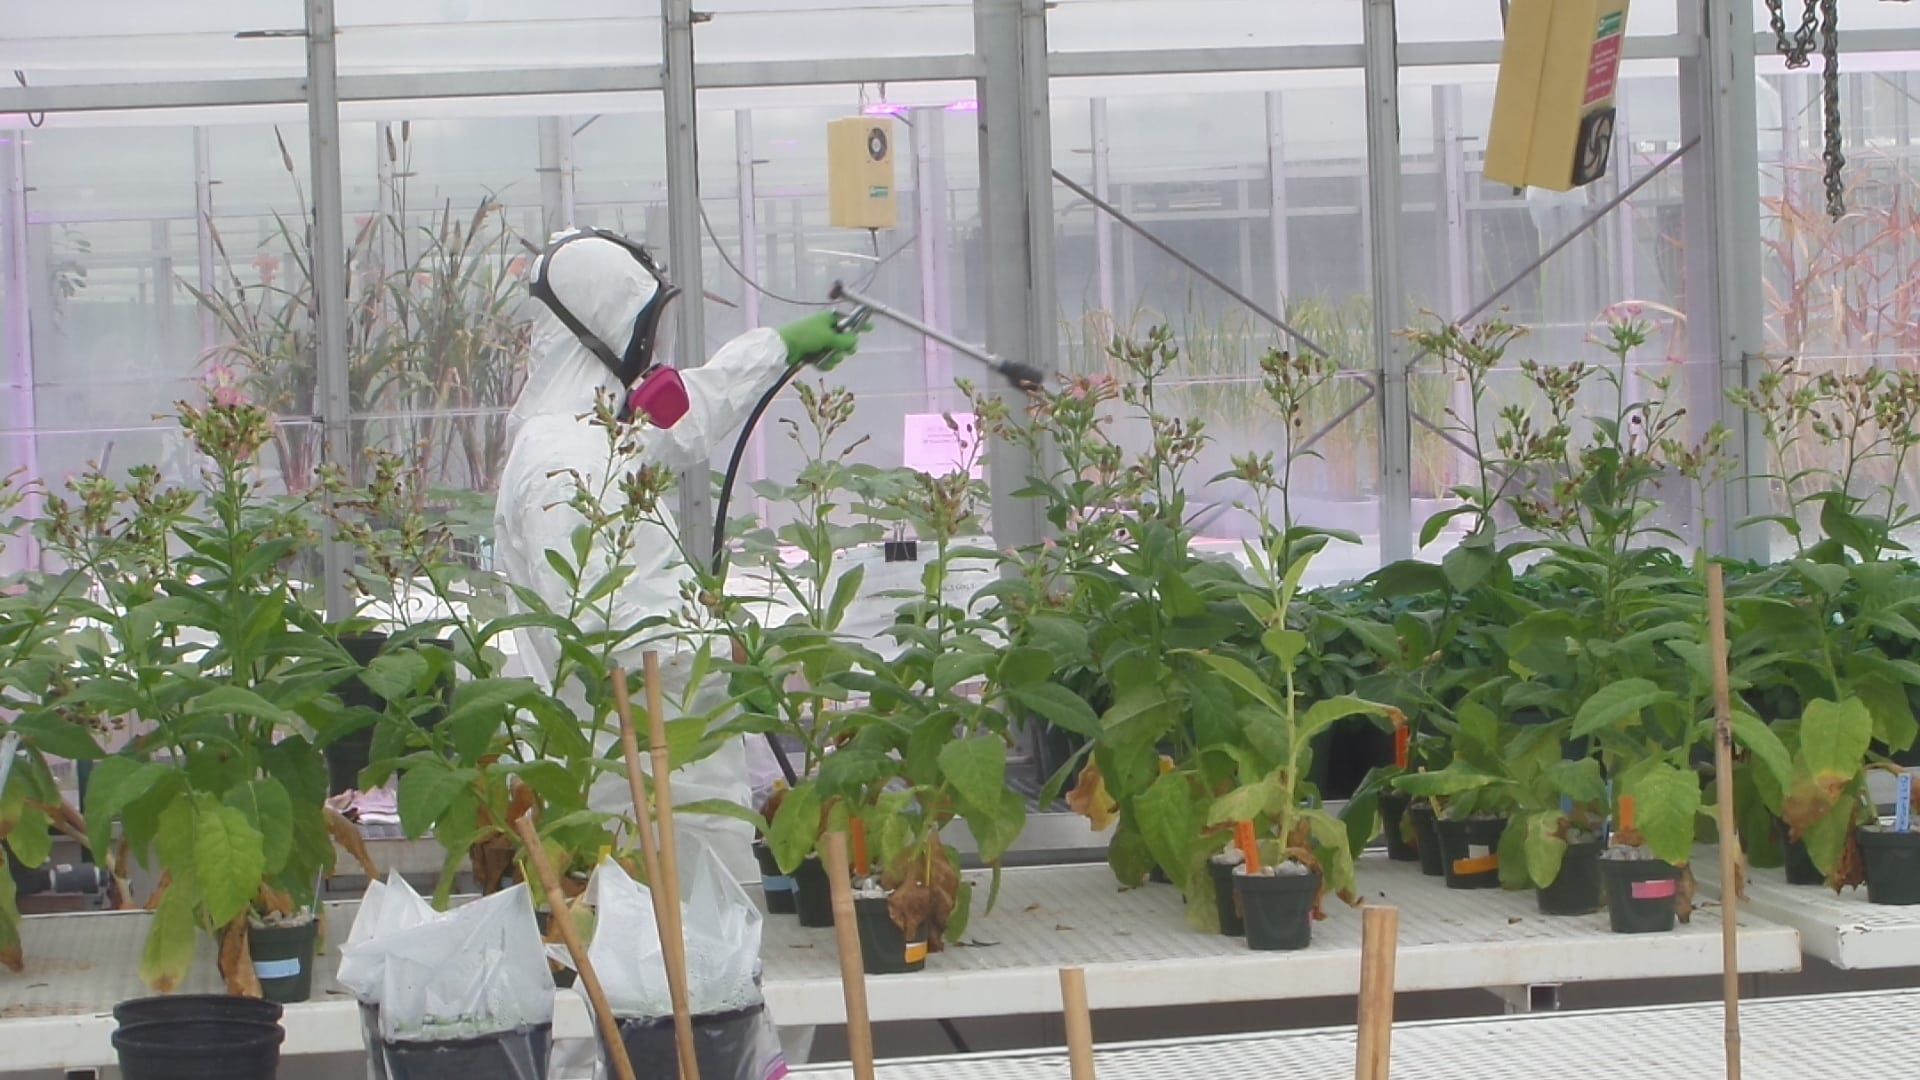 Applying Pesticides in Greenhouse